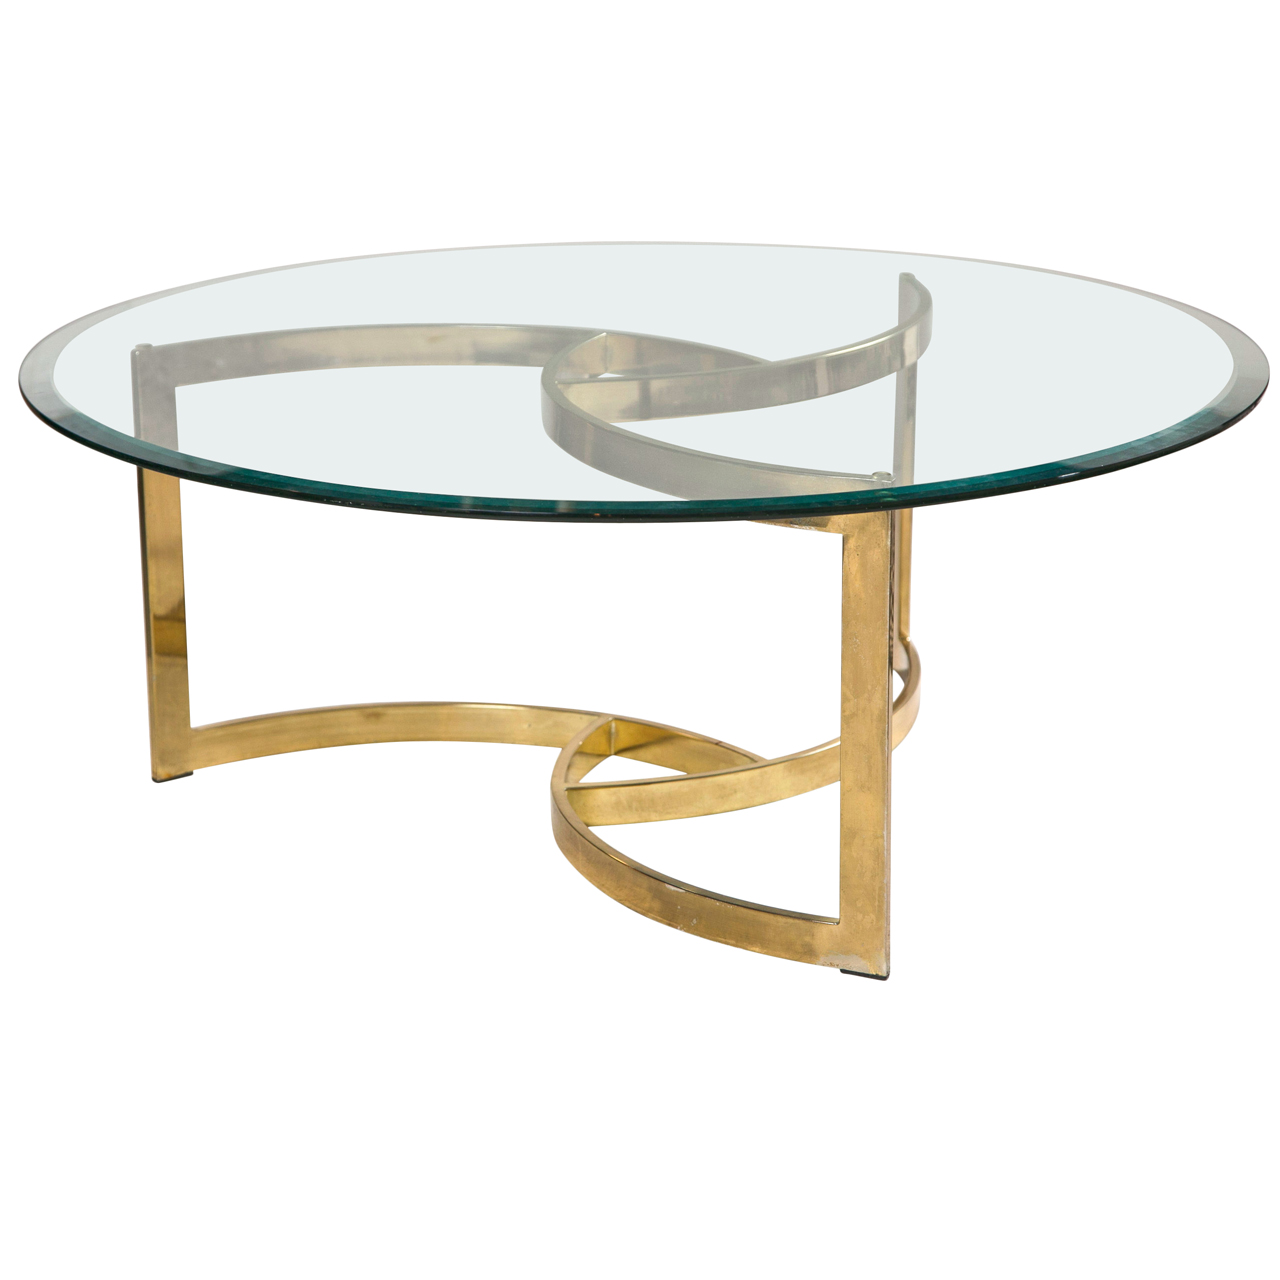 many-different-types-of-table-cause-you-to-must-consider-a-number-of-things-when-you-wish-choose-your-table-to-put-within-your-round-glass-coffee-table-wood-base (Image 4 of 10)